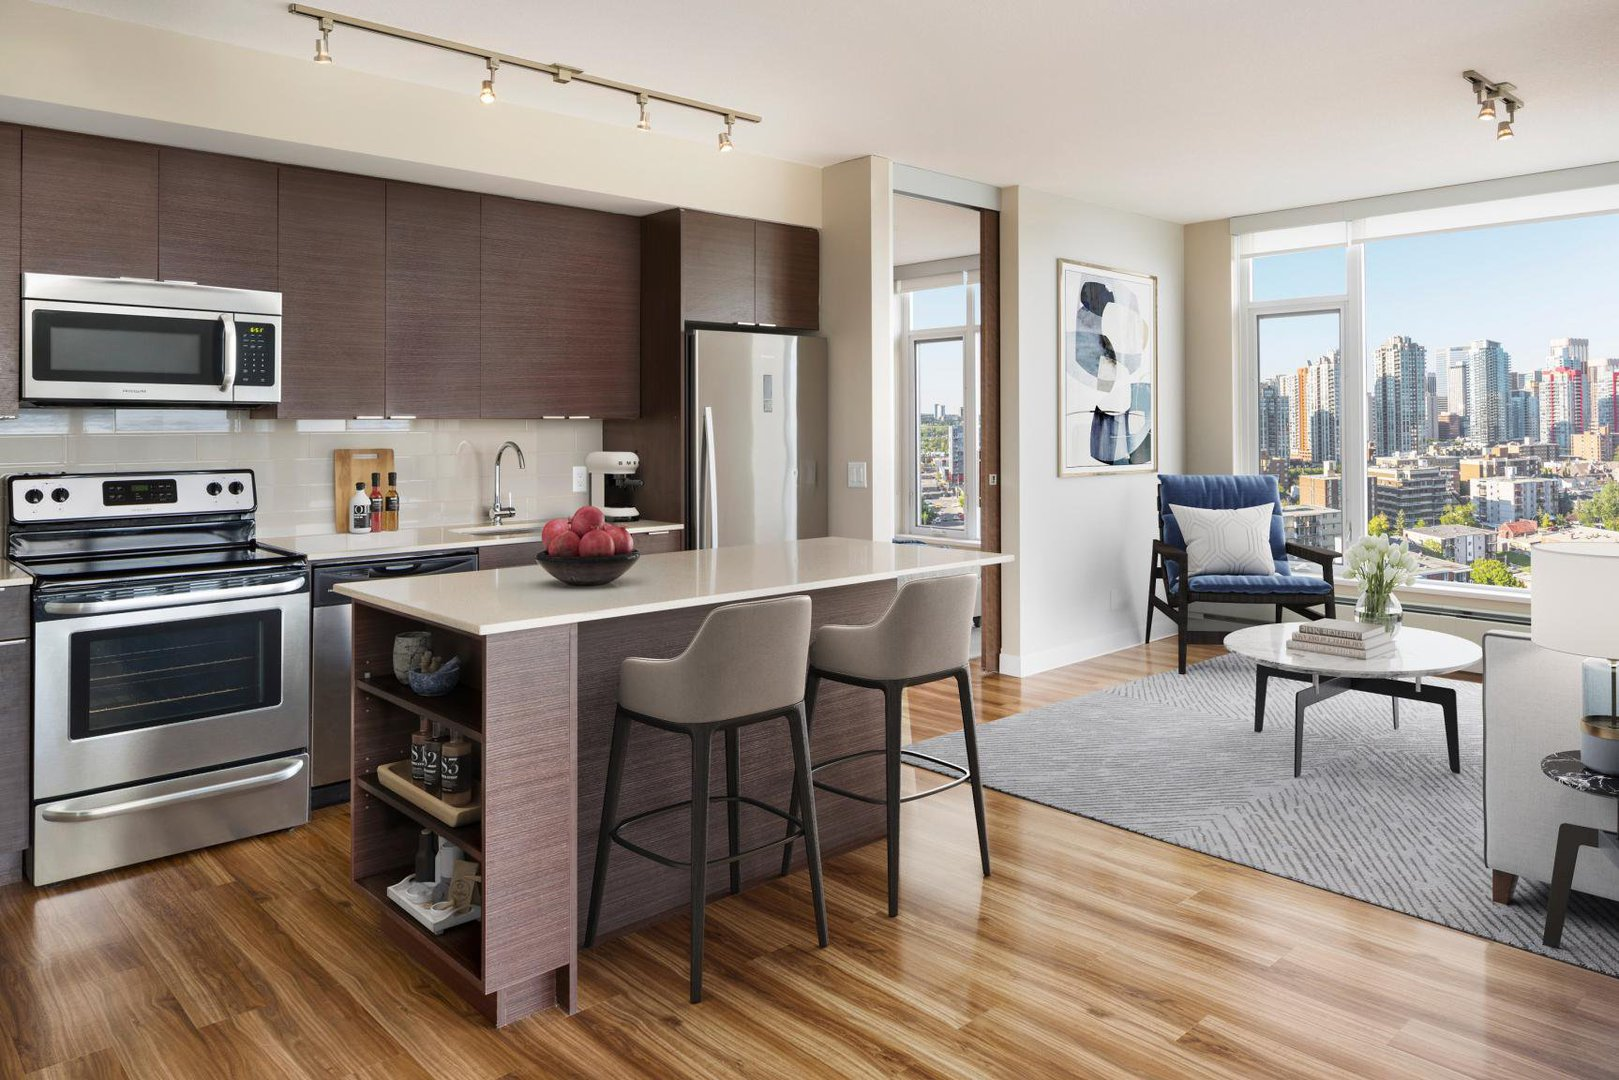 Marvelous Rentals Ca Calgary Apartments Condos And Houses For Rent Download Free Architecture Designs Scobabritishbridgeorg